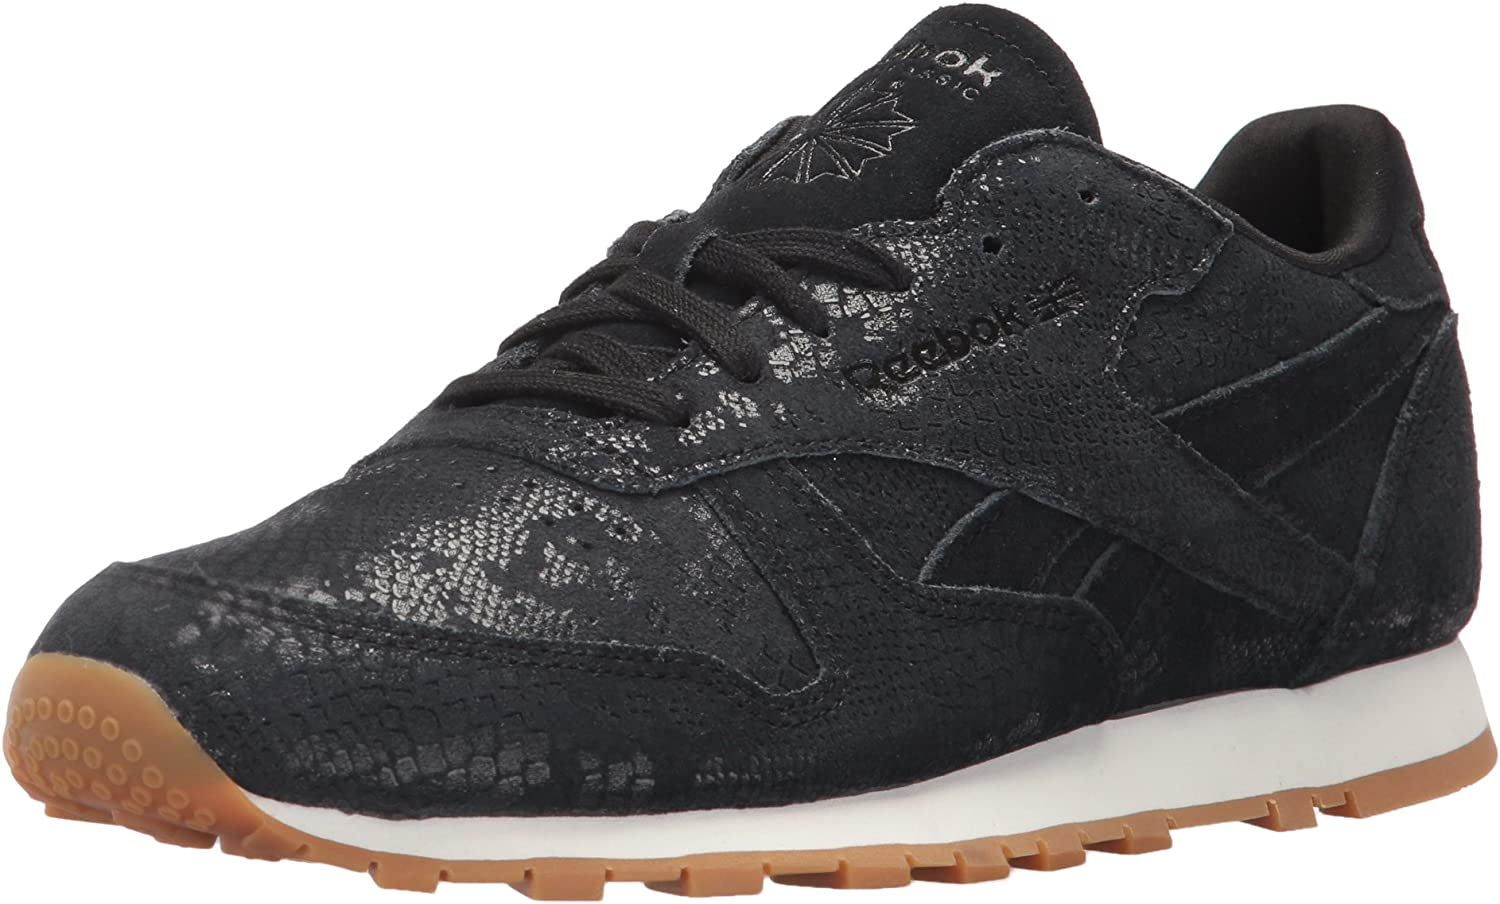 Reebok Classics Womens Women's Leather Clean Exotics Fashion Sneakers Fashion Sneakers